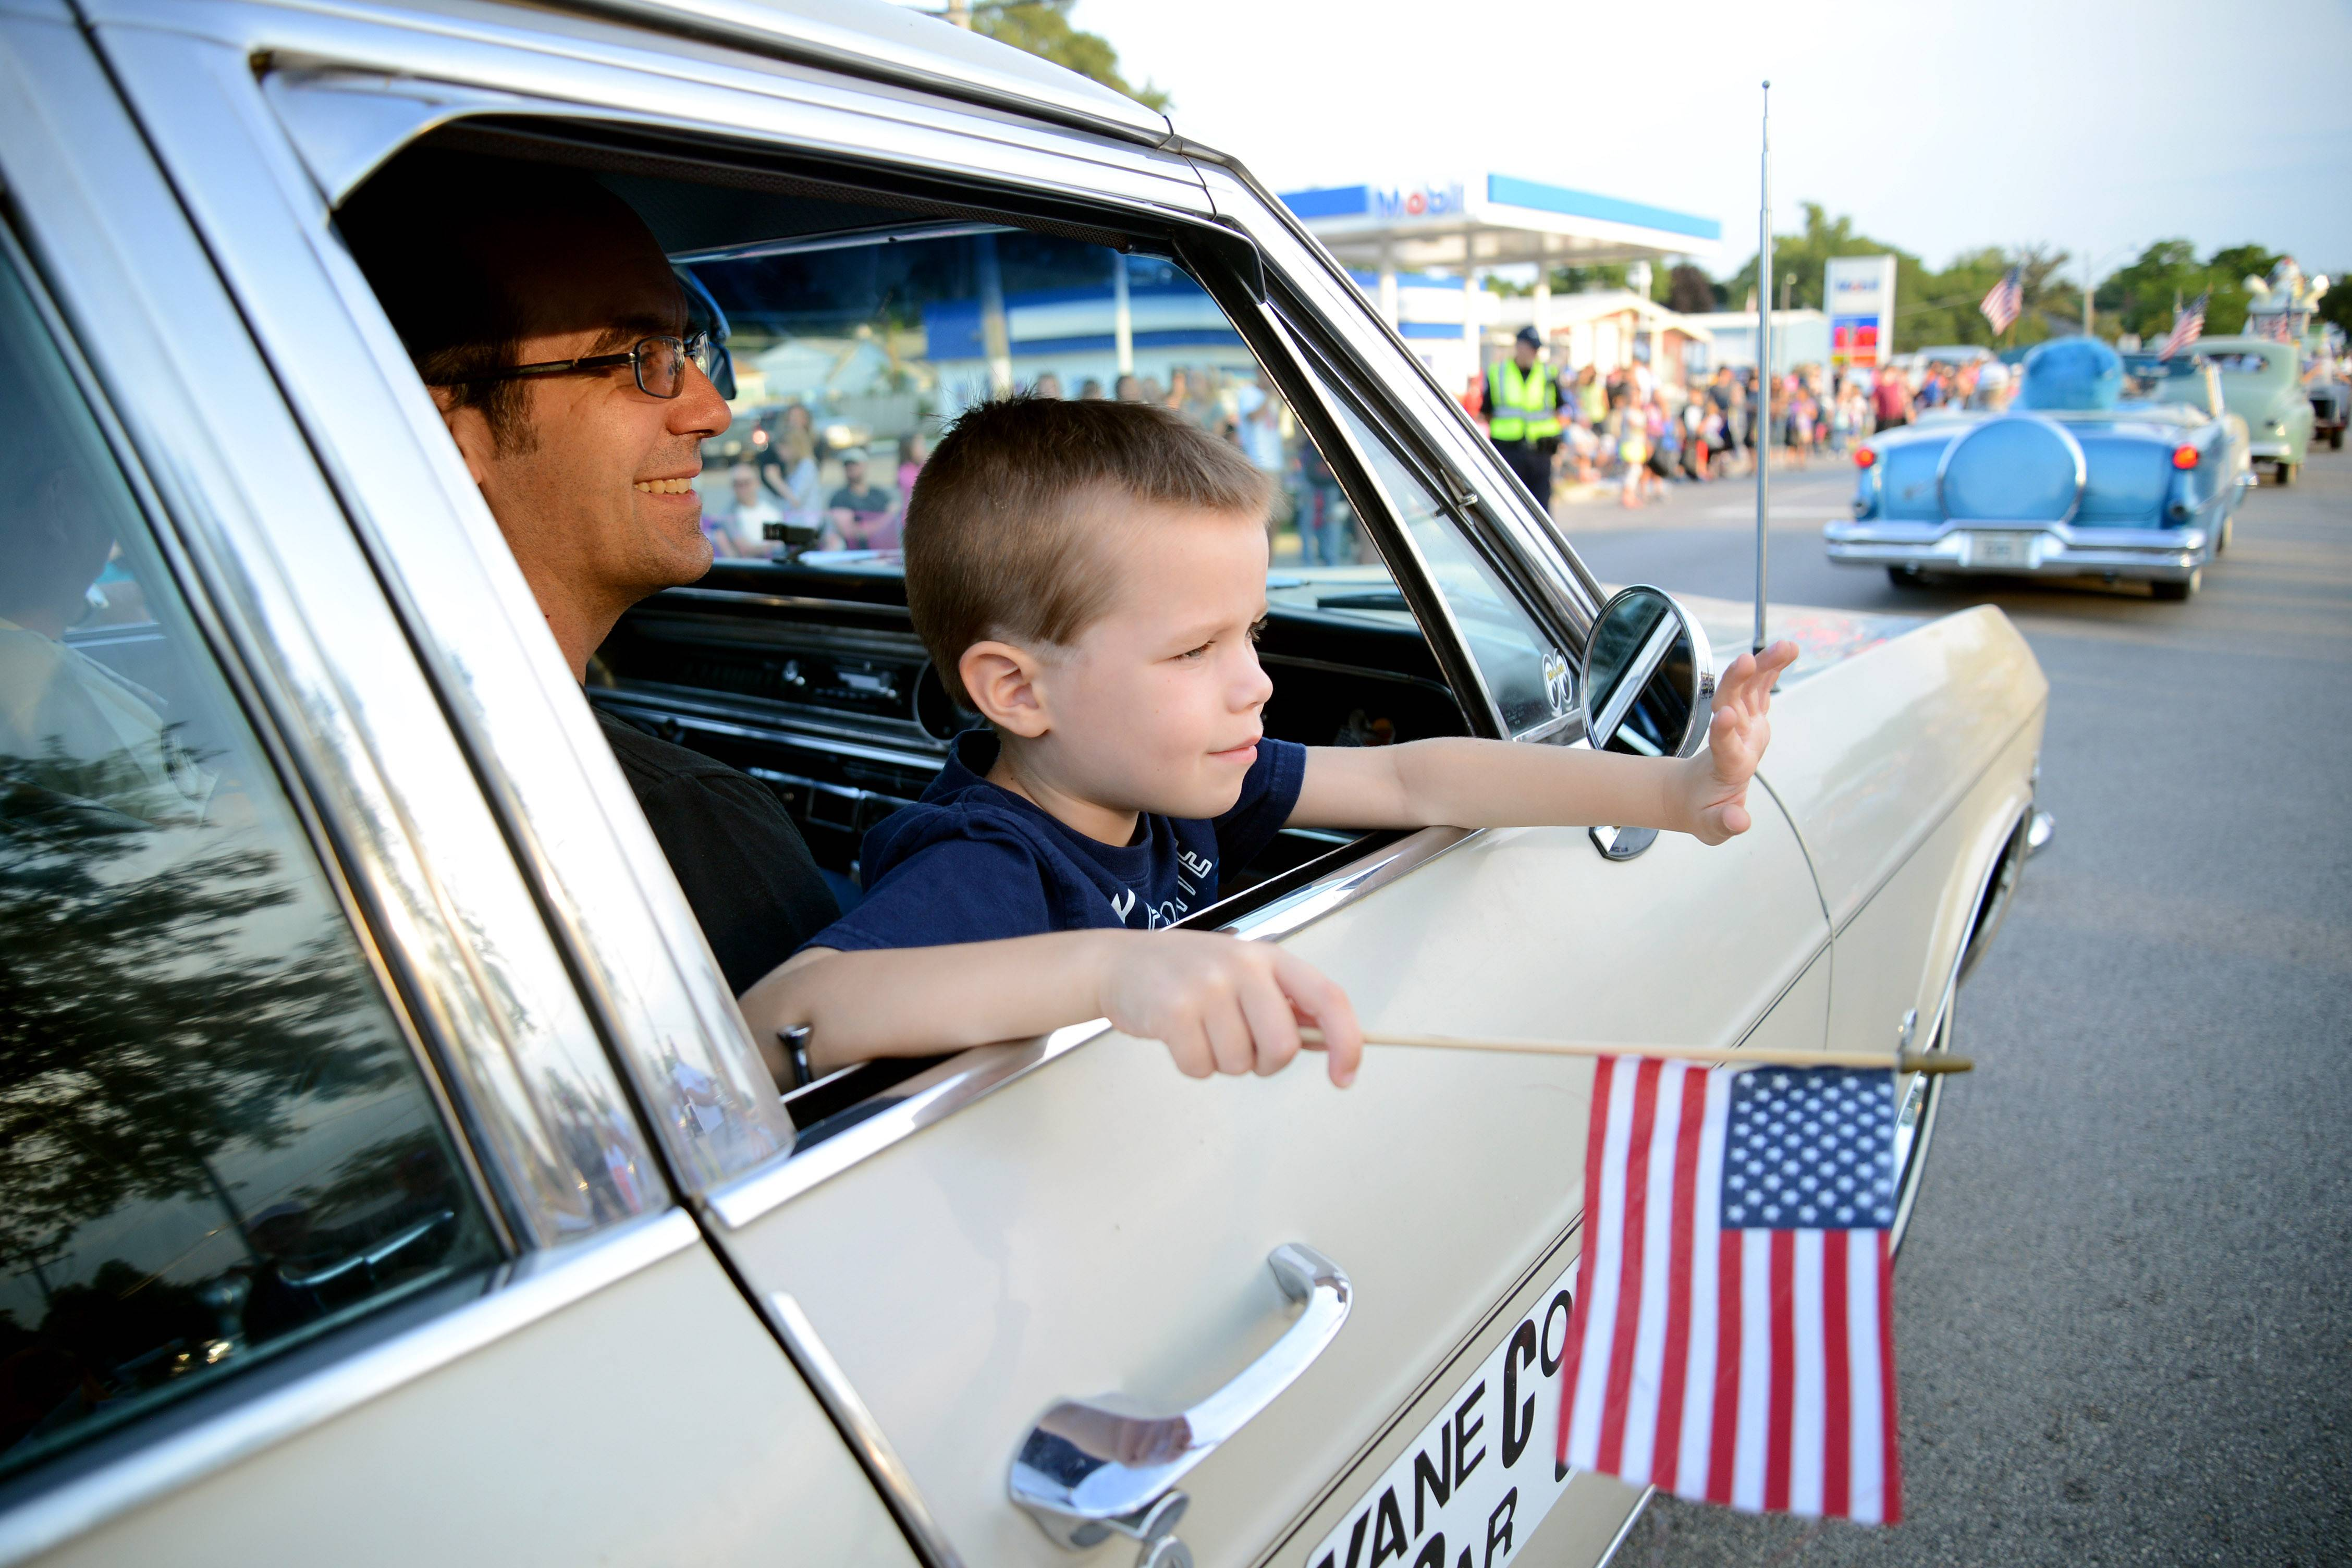 Ruben Pittman, 5, of Sycamore, waves to the crowd at the Elburn Days parade while seated in his dad Rick's lap and riding in the '65 Chevy Impala driven by his grandfather, Ronn Pittman of Batavia, on Friday.